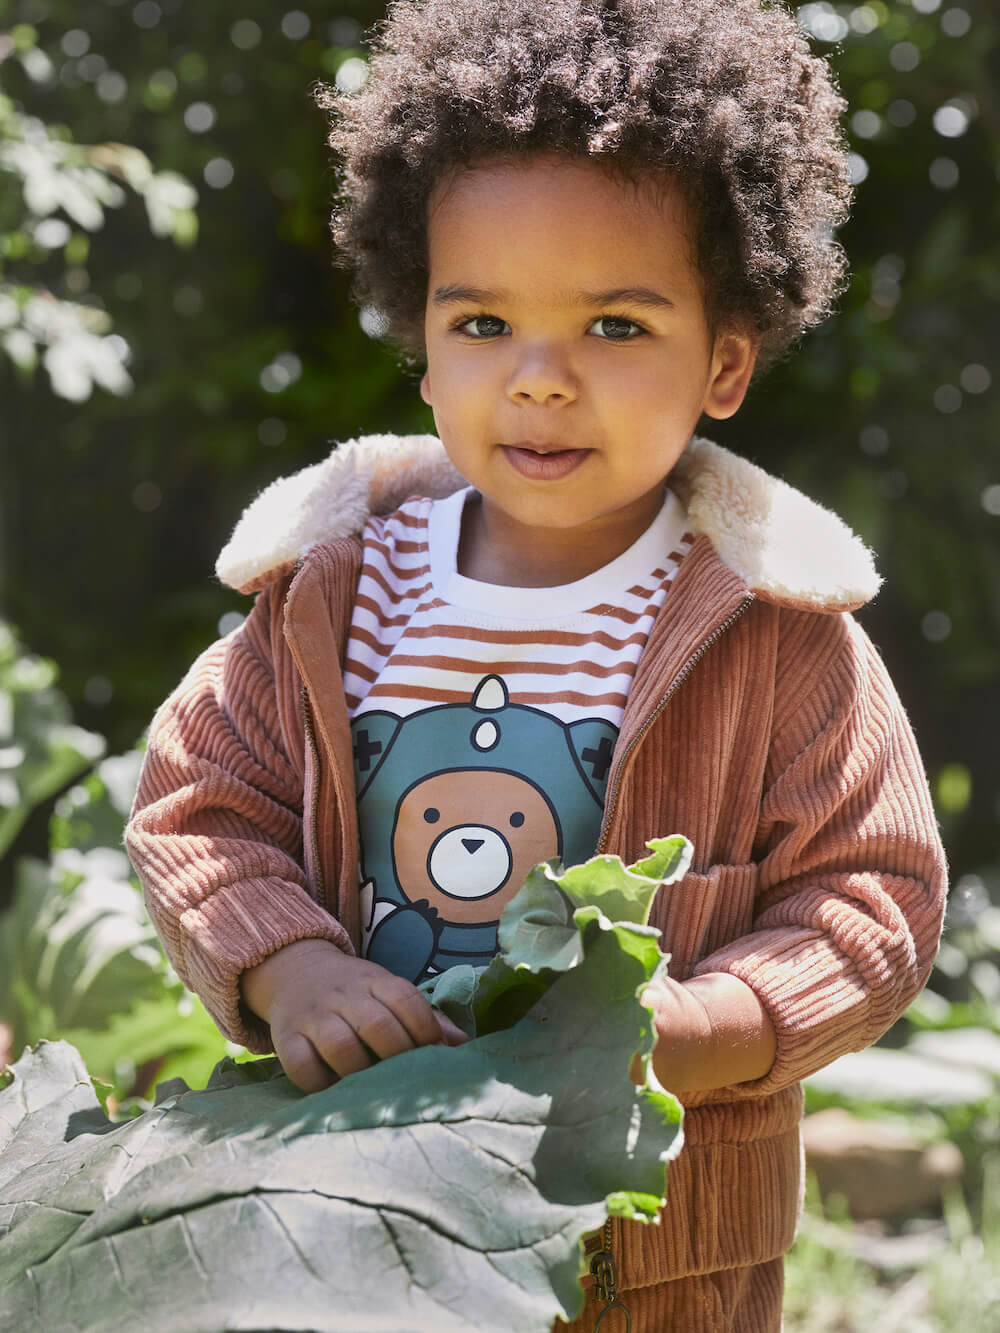 Huxbaby Online Australia That 70's Jacket | Tiny People